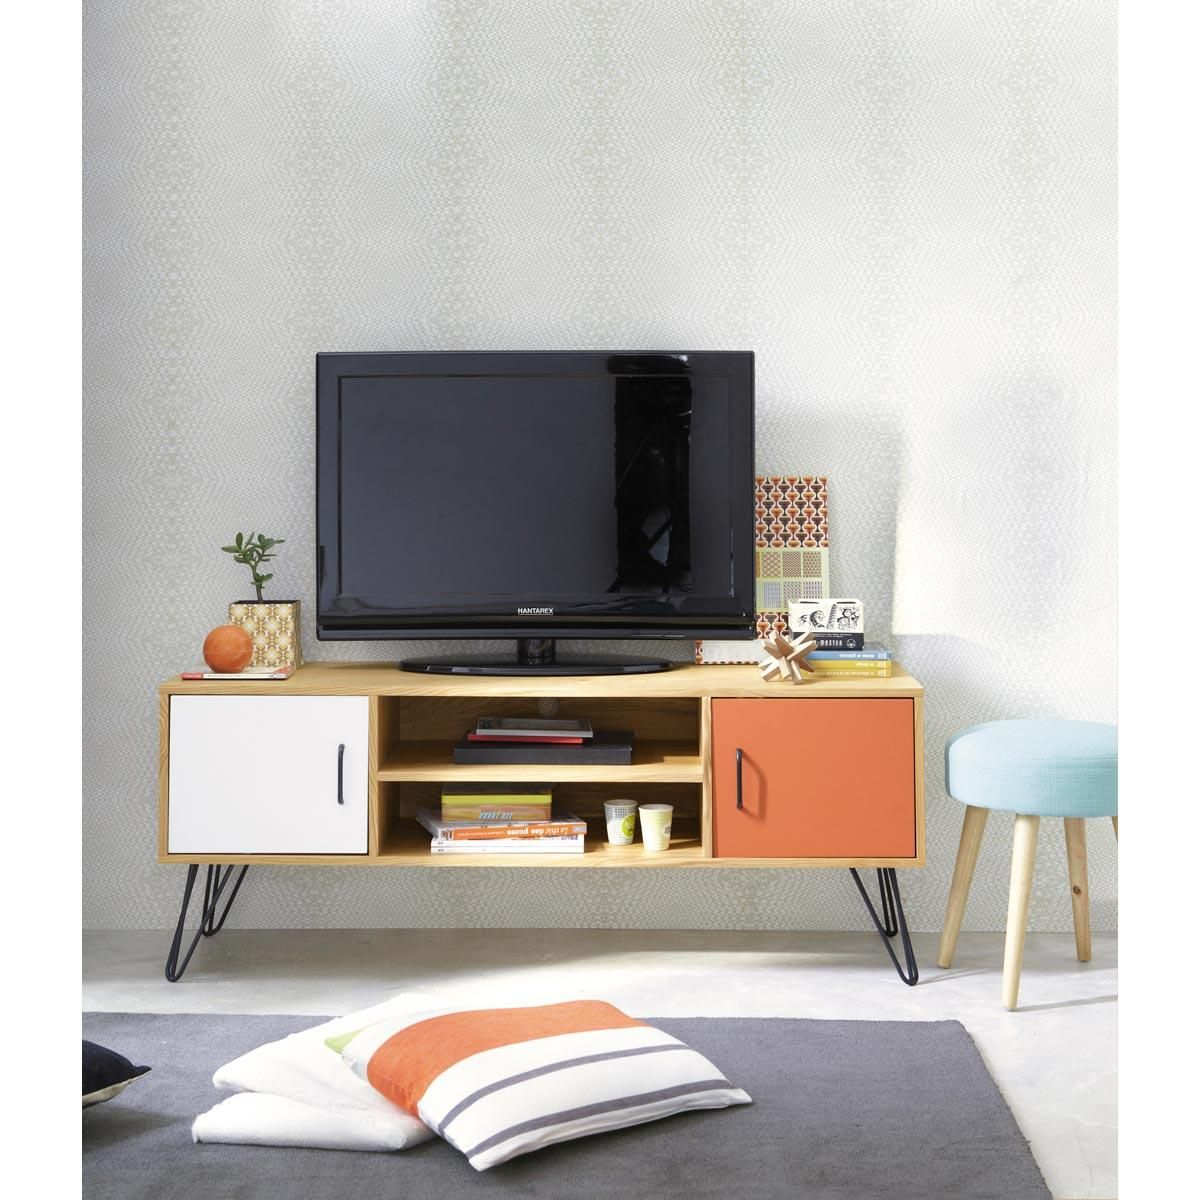 2 t riges tv lowboard im vintage stil wei orange home sweet home m bel tv m bel und lowboard. Black Bedroom Furniture Sets. Home Design Ideas